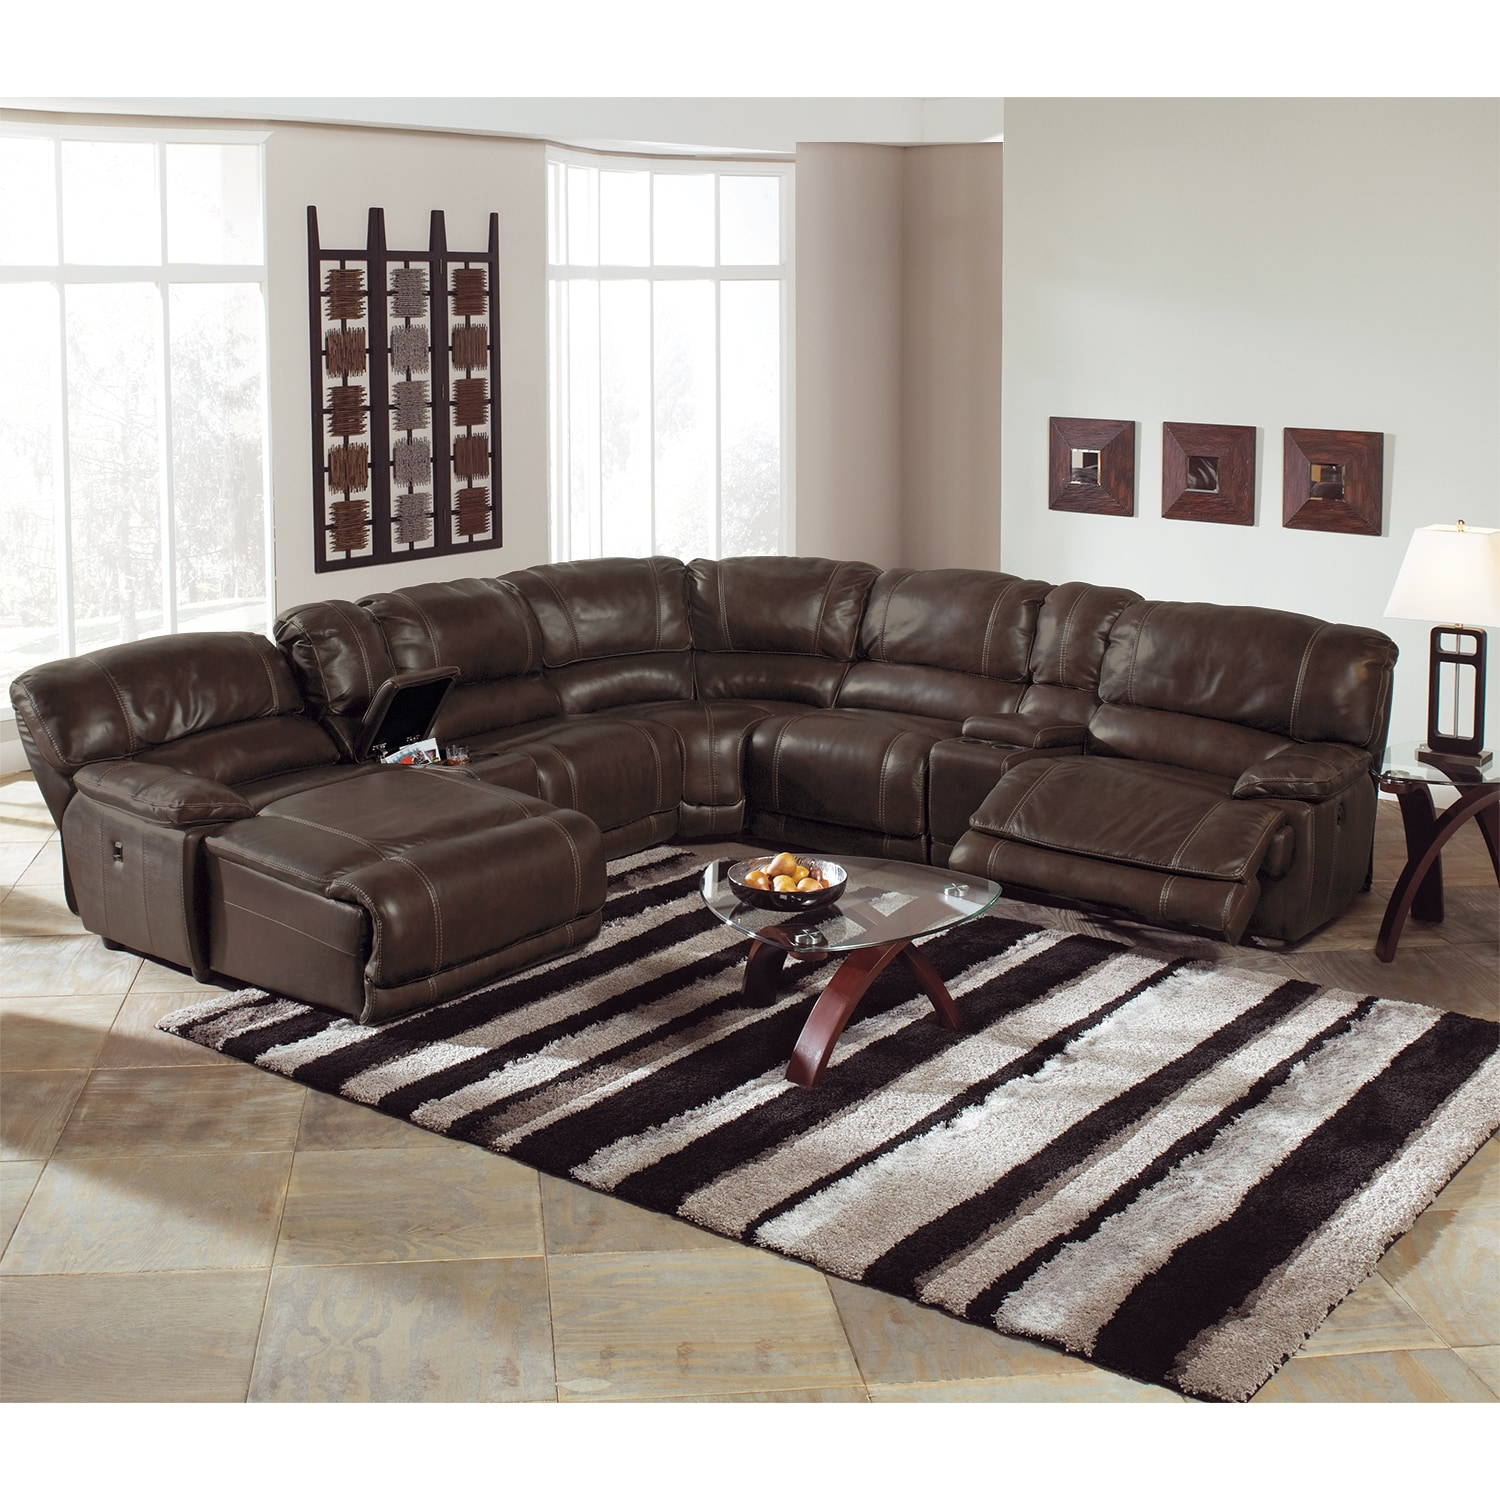 st malo 6 piece power reclining sectional with left facing chaise brown american signature. Black Bedroom Furniture Sets. Home Design Ideas